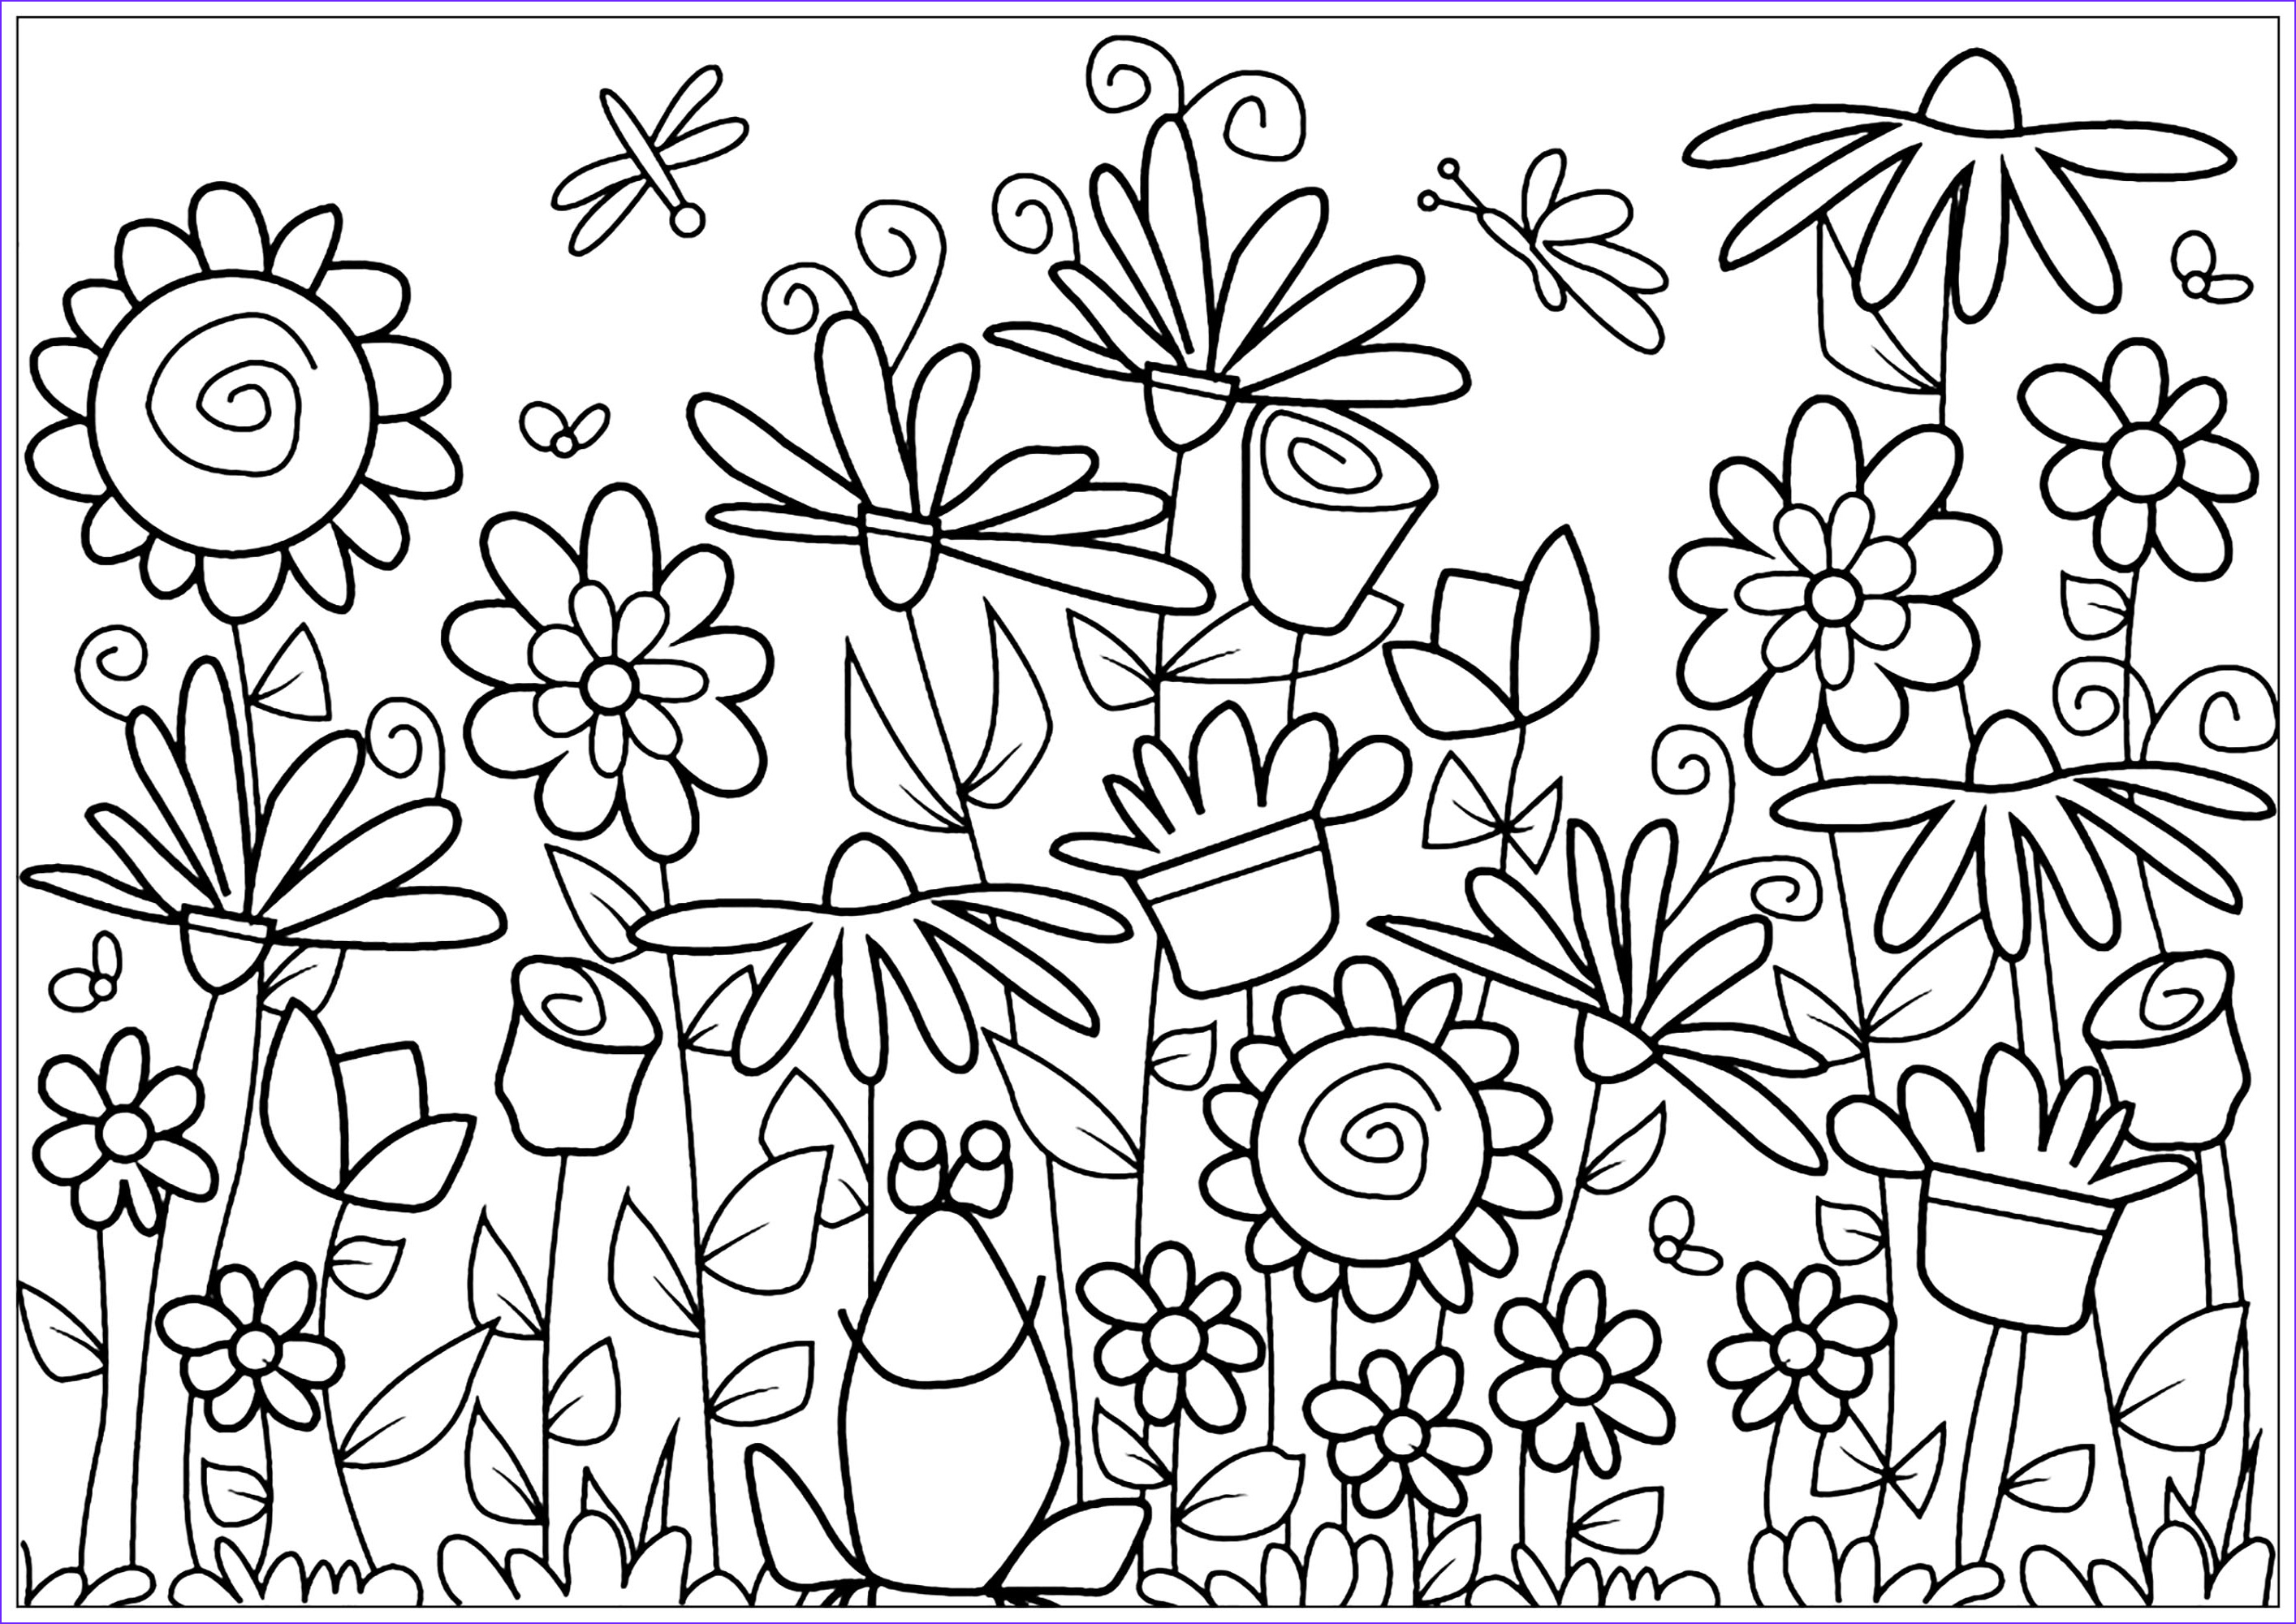 image=fleurs et ve ation coloring page flowers and frog 1